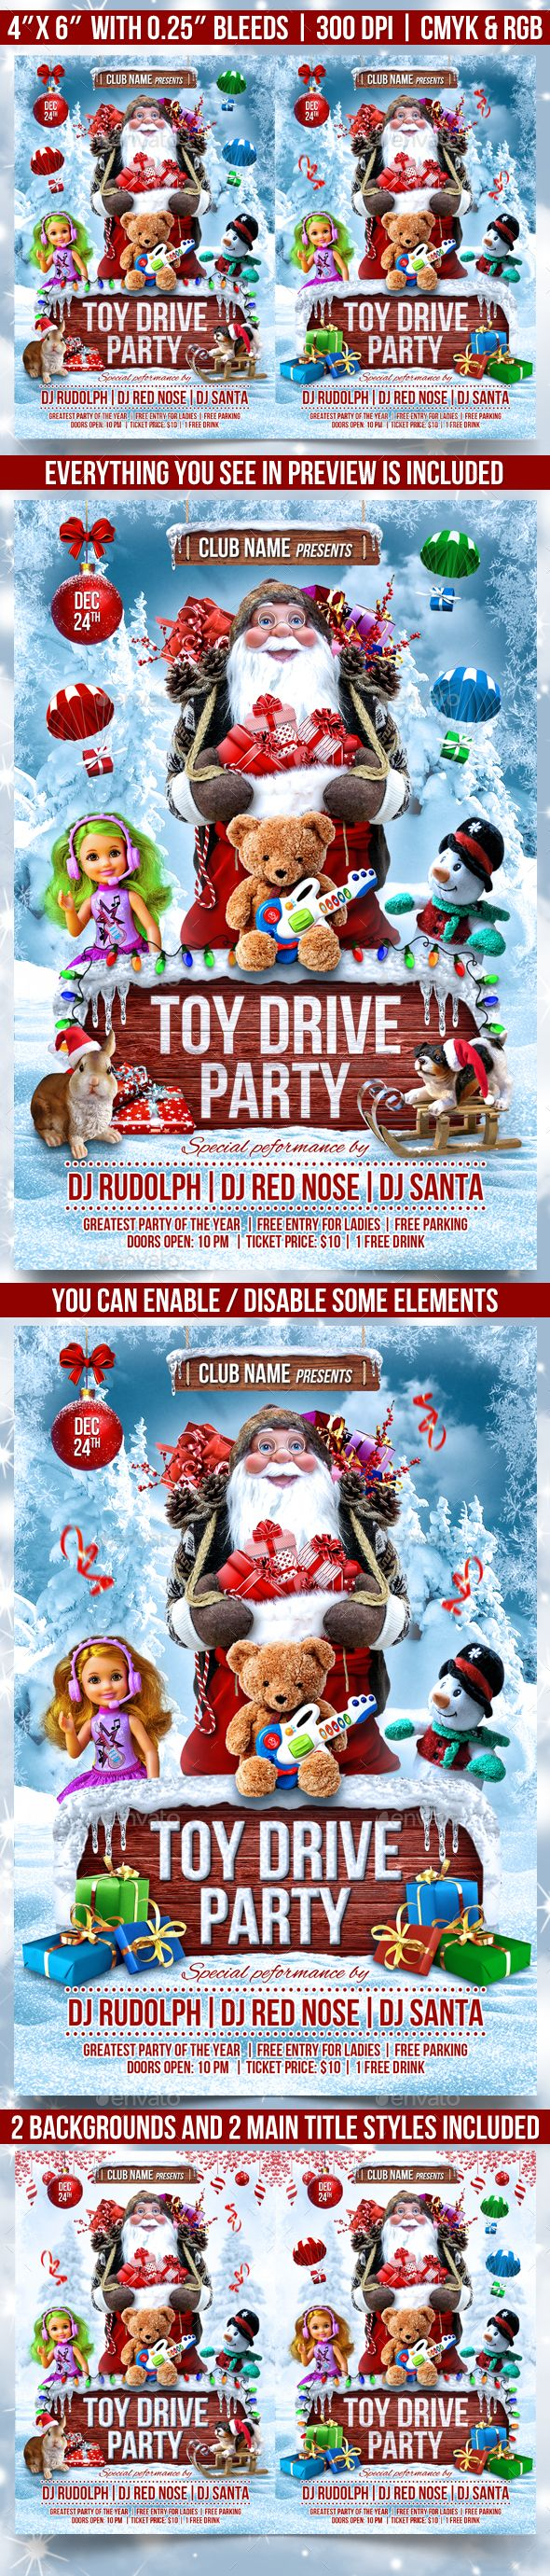 Toy Drive Party Flyer Template - Events Flyers candy cane, charity, charity template, christmas, christmas bash, christmas card, Christmas Celebration, christmas event, christmas party, Christmas poster, christmas tree, flyer template, fun, holiday, kids, kids party, new year, santa, santa klaus, snow, snow flakes, snowman, toy 4 tots, toy drive, toy for tots, winter, winter party, xmas party